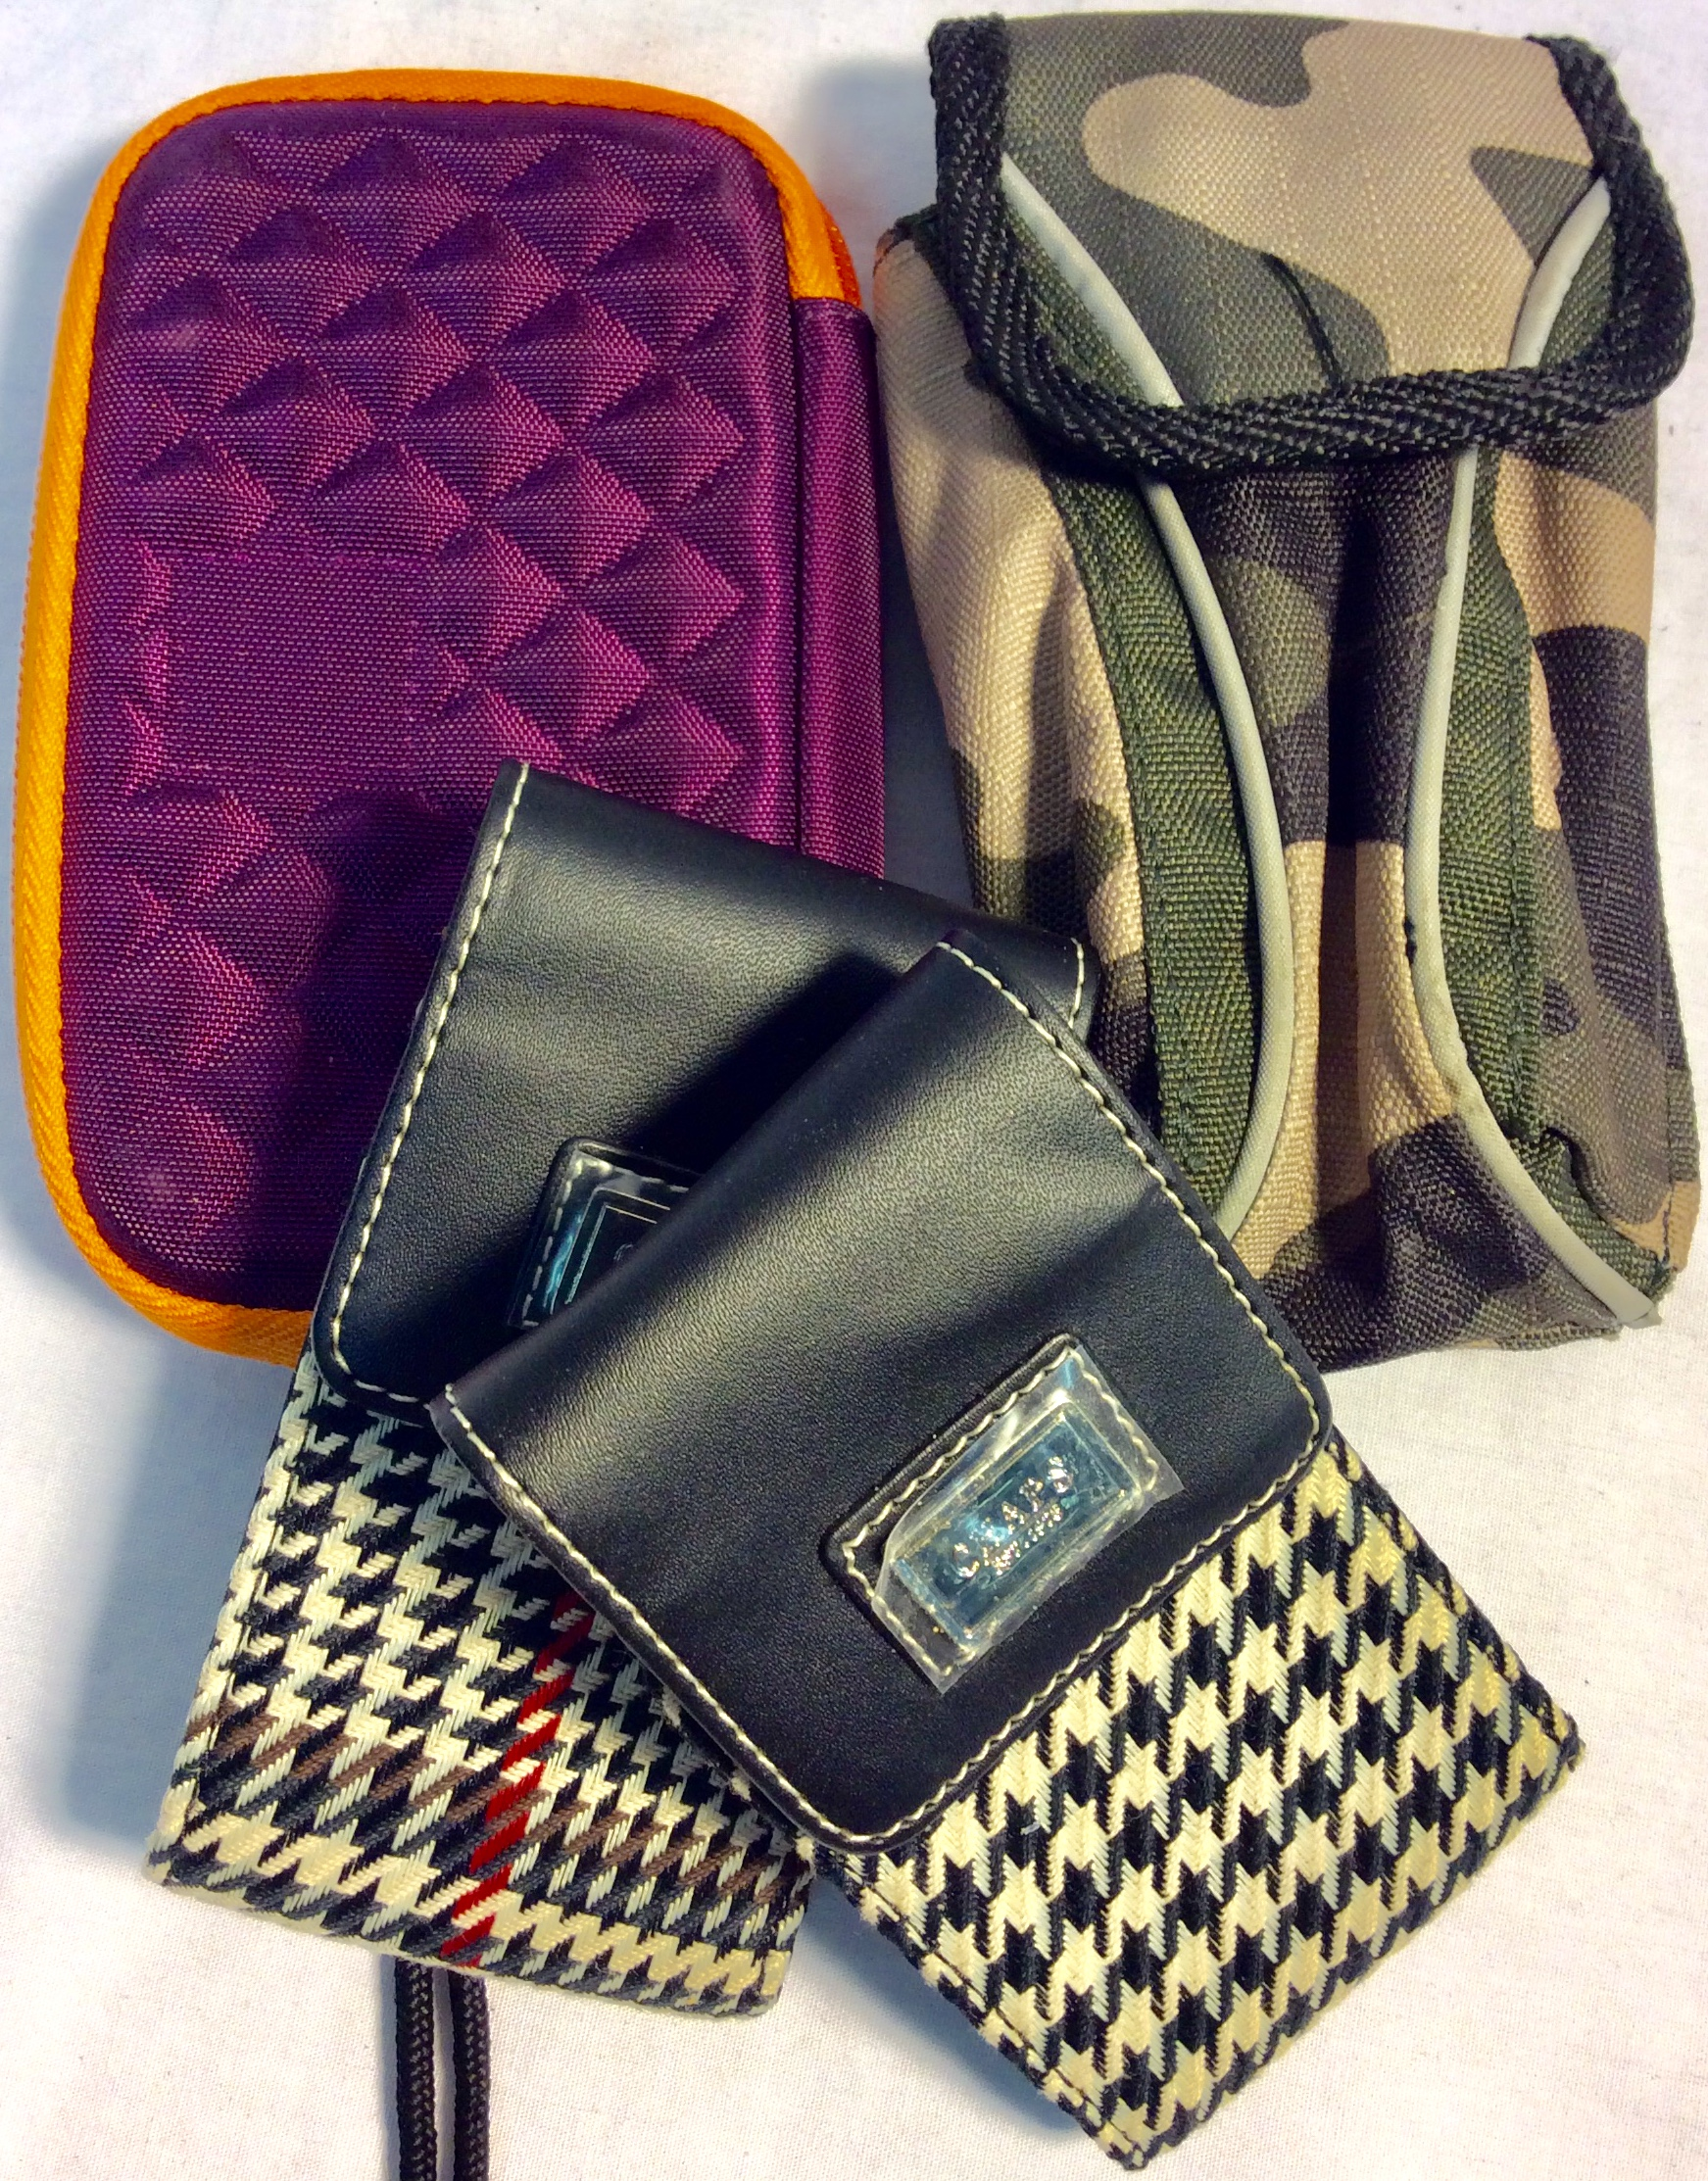 Assorted cellphone pouches